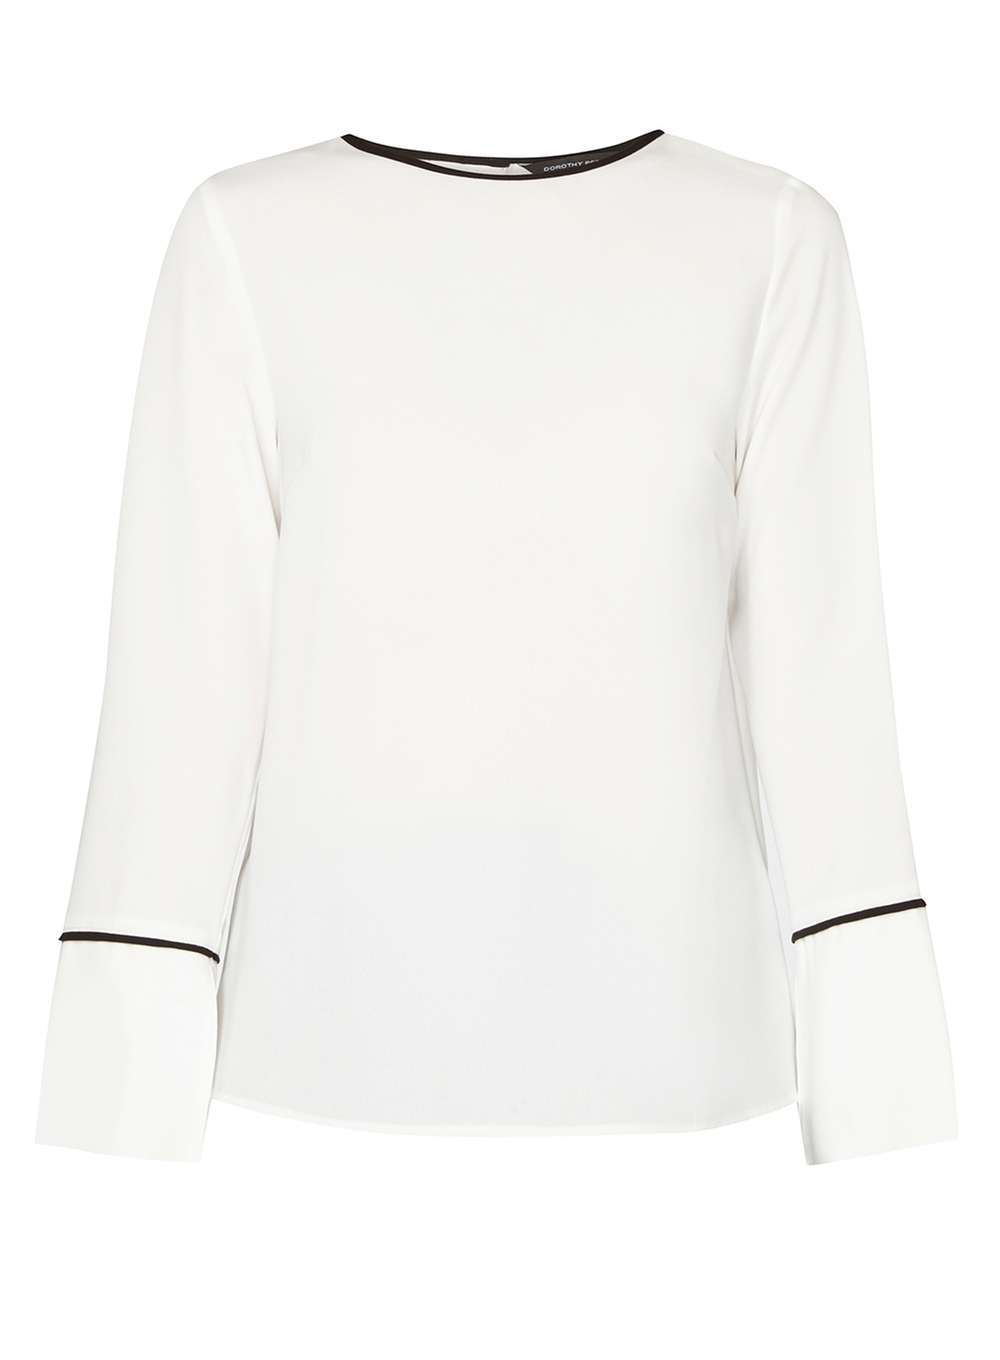 Womens Ivory Longsleeve Wide Cuff Top White - length: below the bottom; style: blouse; predominant colour: white; secondary colour: black; occasions: casual, creative work; fibres: polyester/polyamide - 100%; fit: straight cut; neckline: crew; sleeve length: long sleeve; sleeve style: standard; pattern type: fabric; pattern size: light/subtle; pattern: colourblock; texture group: other - light to midweight; season: a/w 2016; wardrobe: highlight